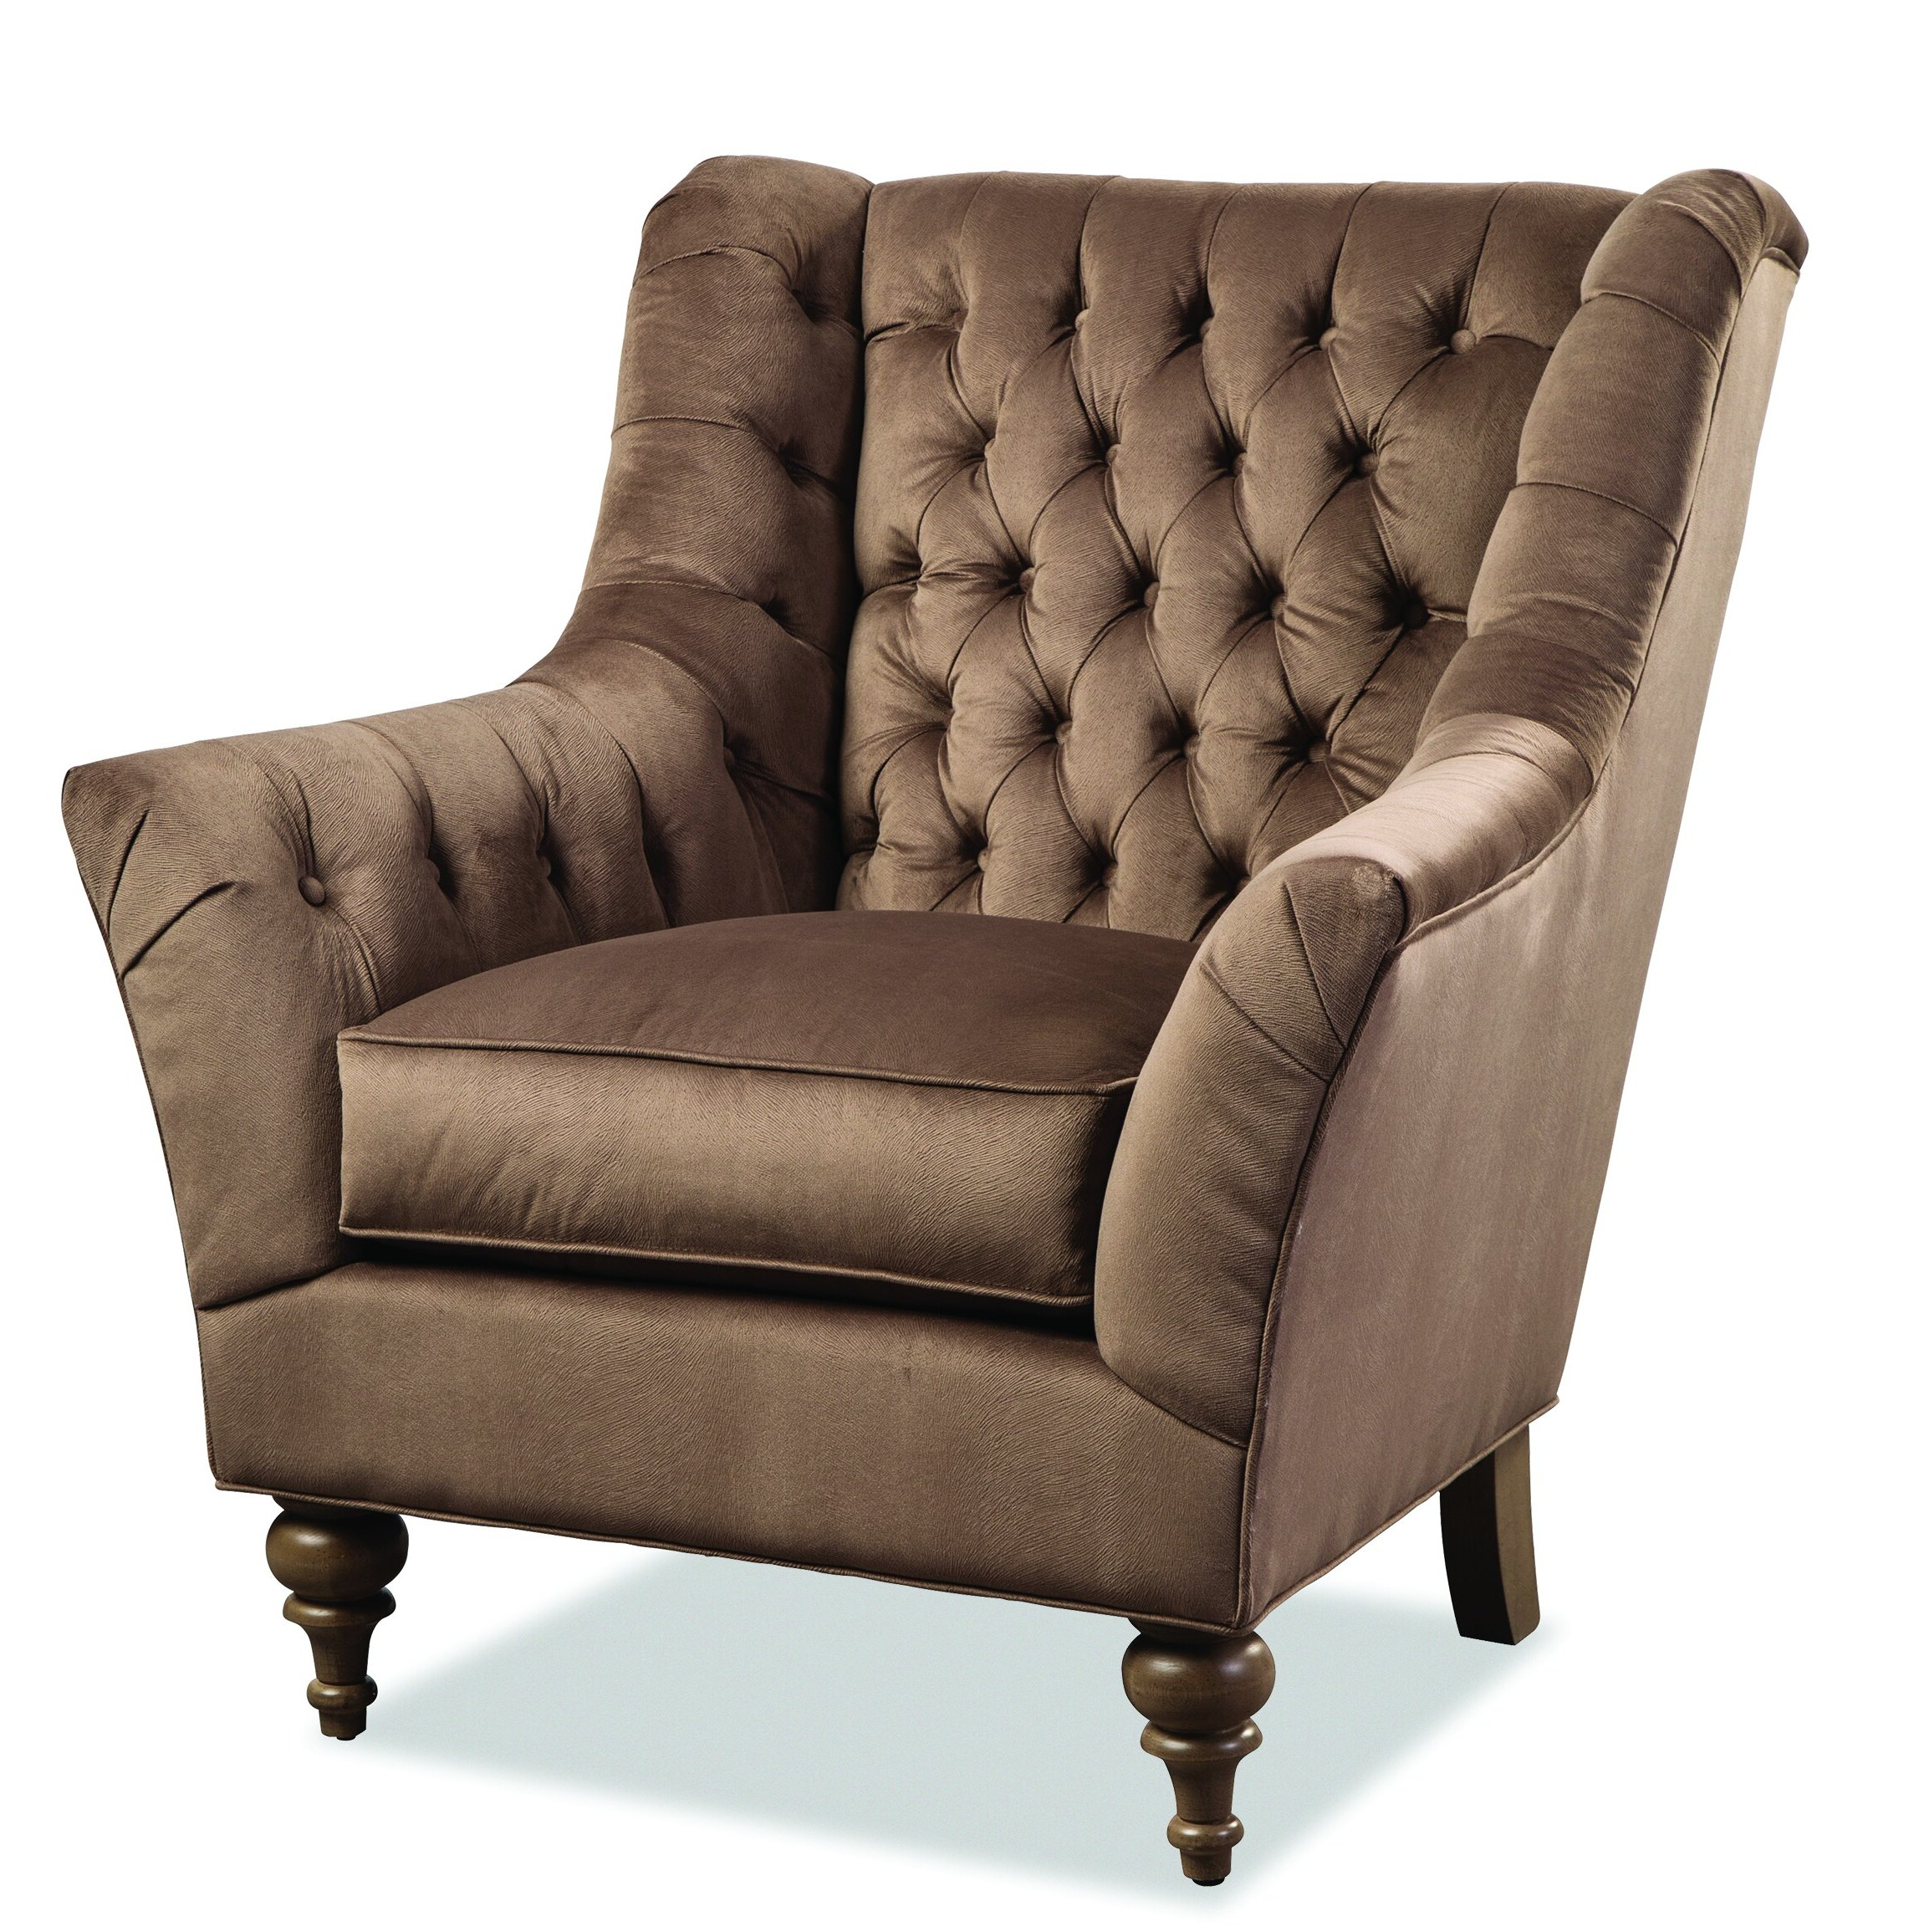 Waterton Wingback Chairs For Well Known Espresso Wood Wingback Accent Chairs You'll Love In (View 6 of 20)